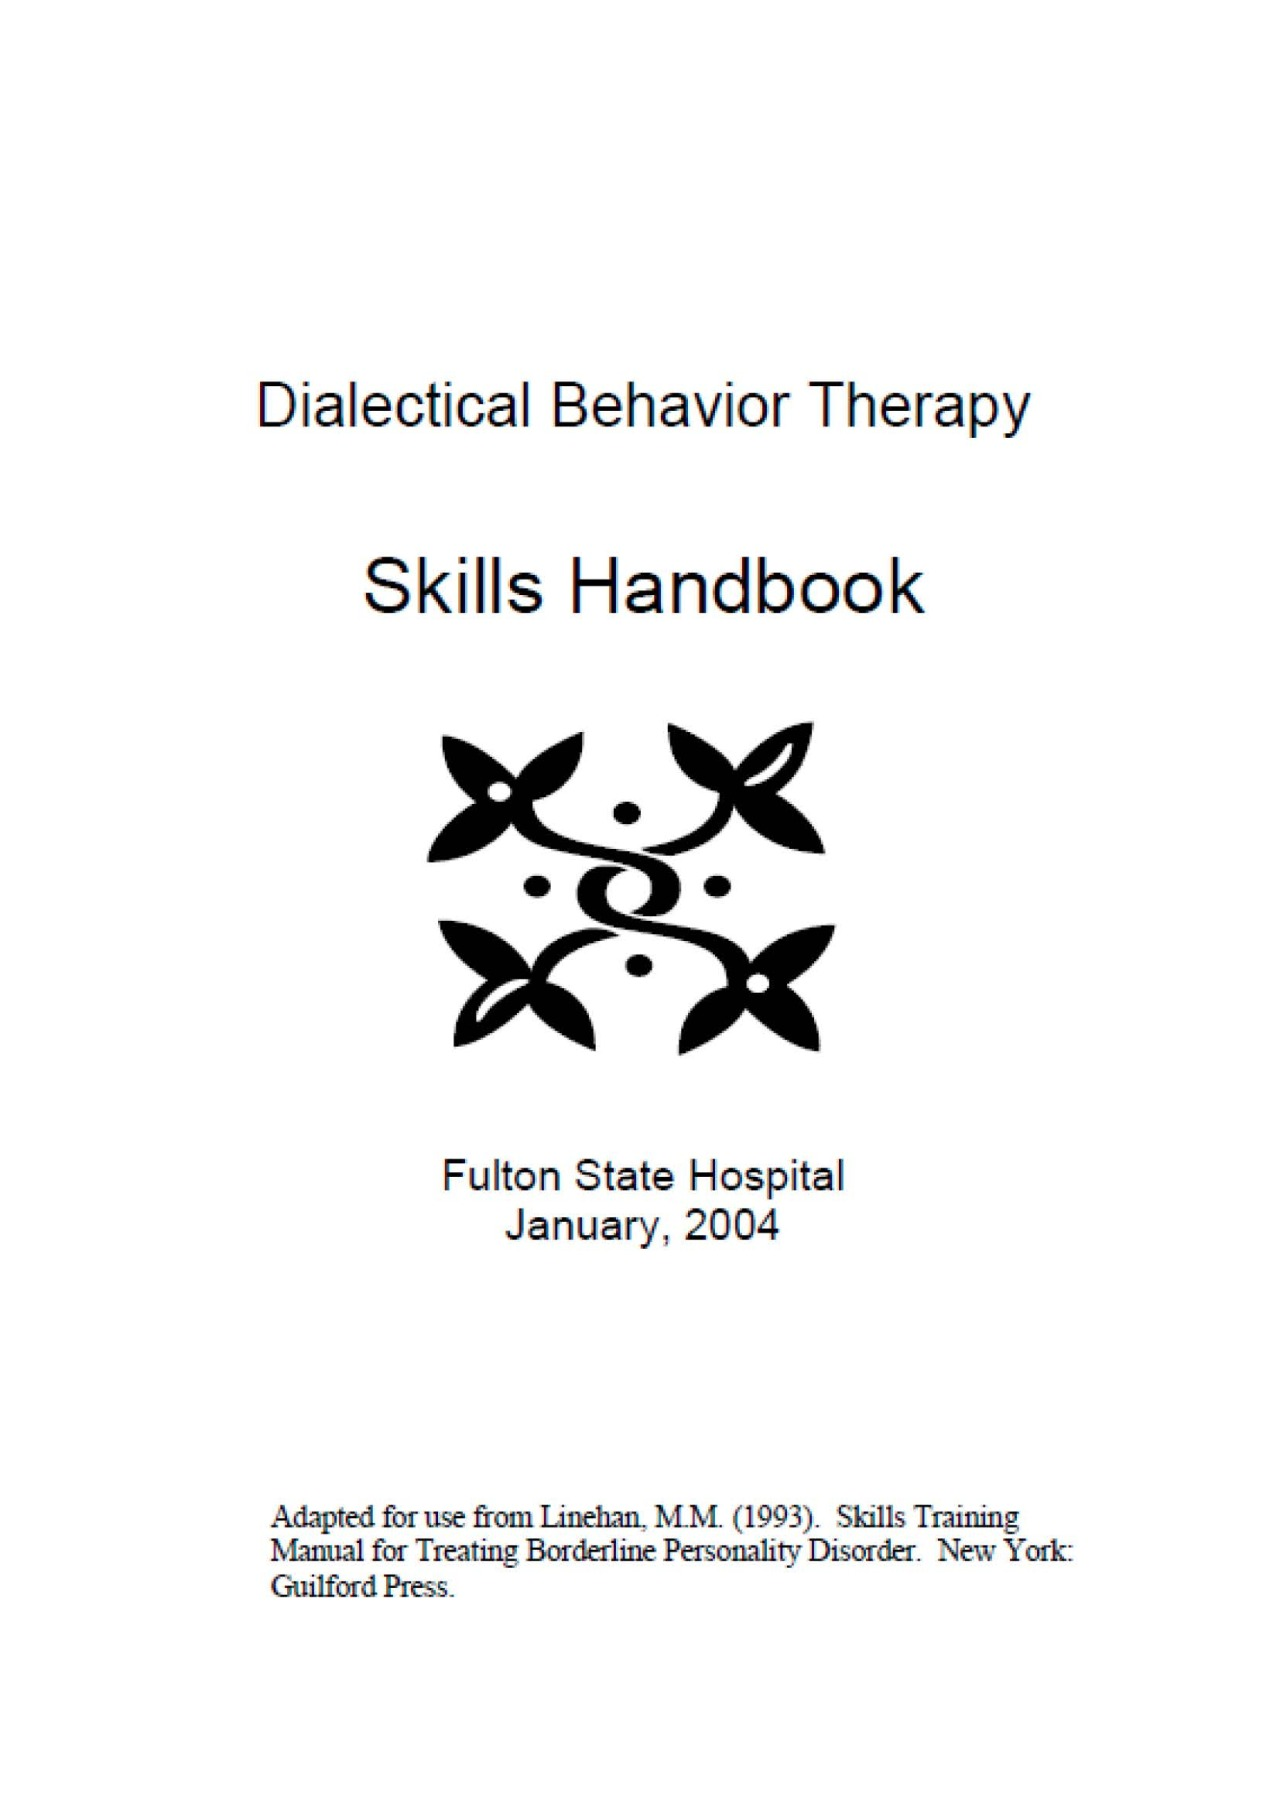 Healingschemas Dbt Skills Resources Model For